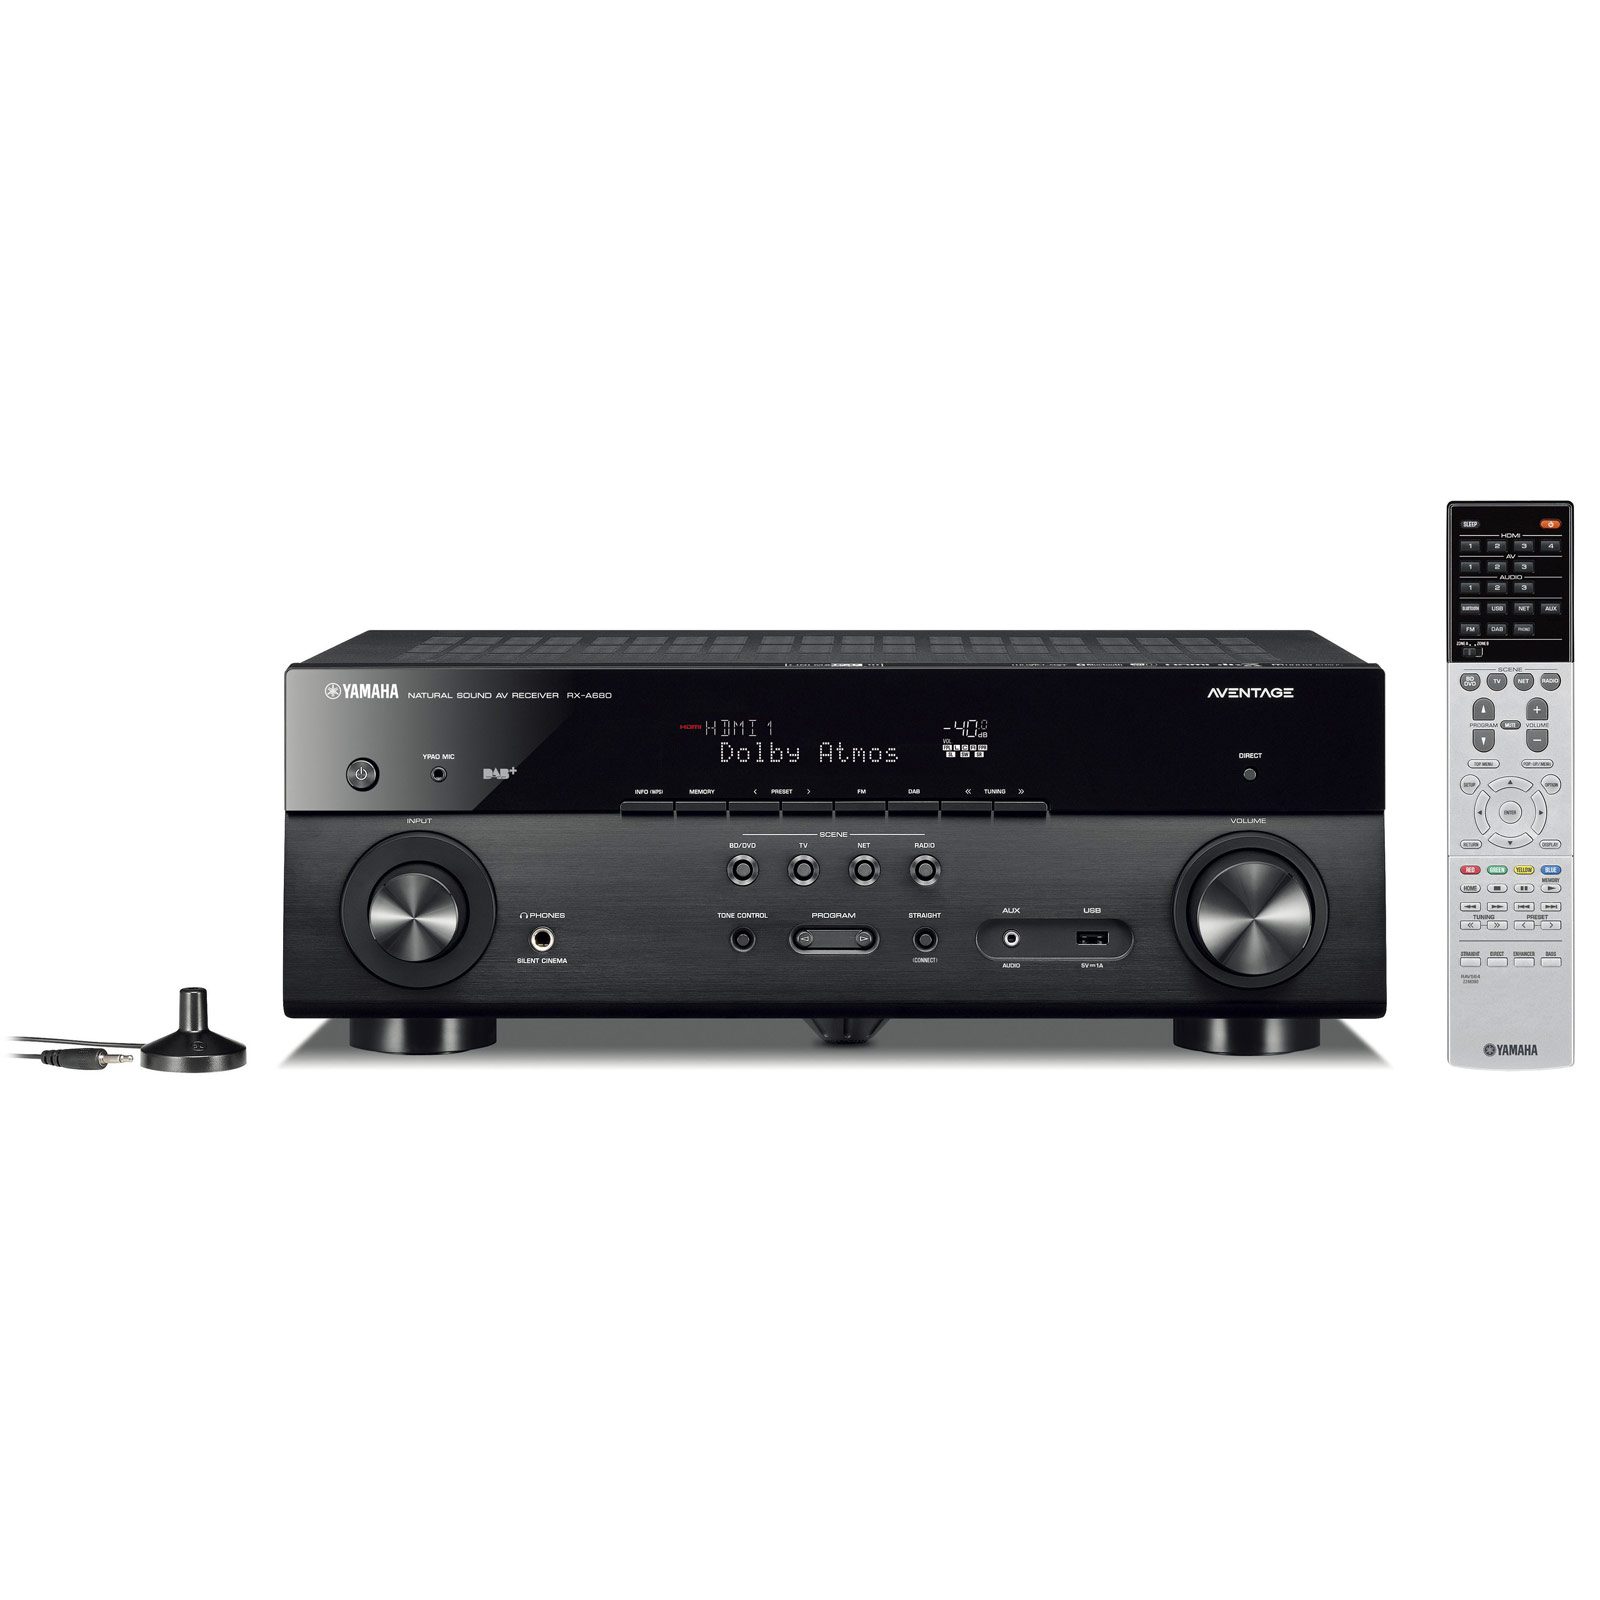 Ampli home cinéma Yamaha MusicCast RX-A680 Noir Ampli-tuner Home Cinéma 7.2 3D 80W/canal - Dolby Atmos/DTS:X - 4x HDMI HDCP 2.2 Ultra HD 4K - Wi-Fi/Bluetooth/DLNA/AirPlay - MusicCast/MusicCast Surround - A.R.T. Wedge - Calibration YPAO